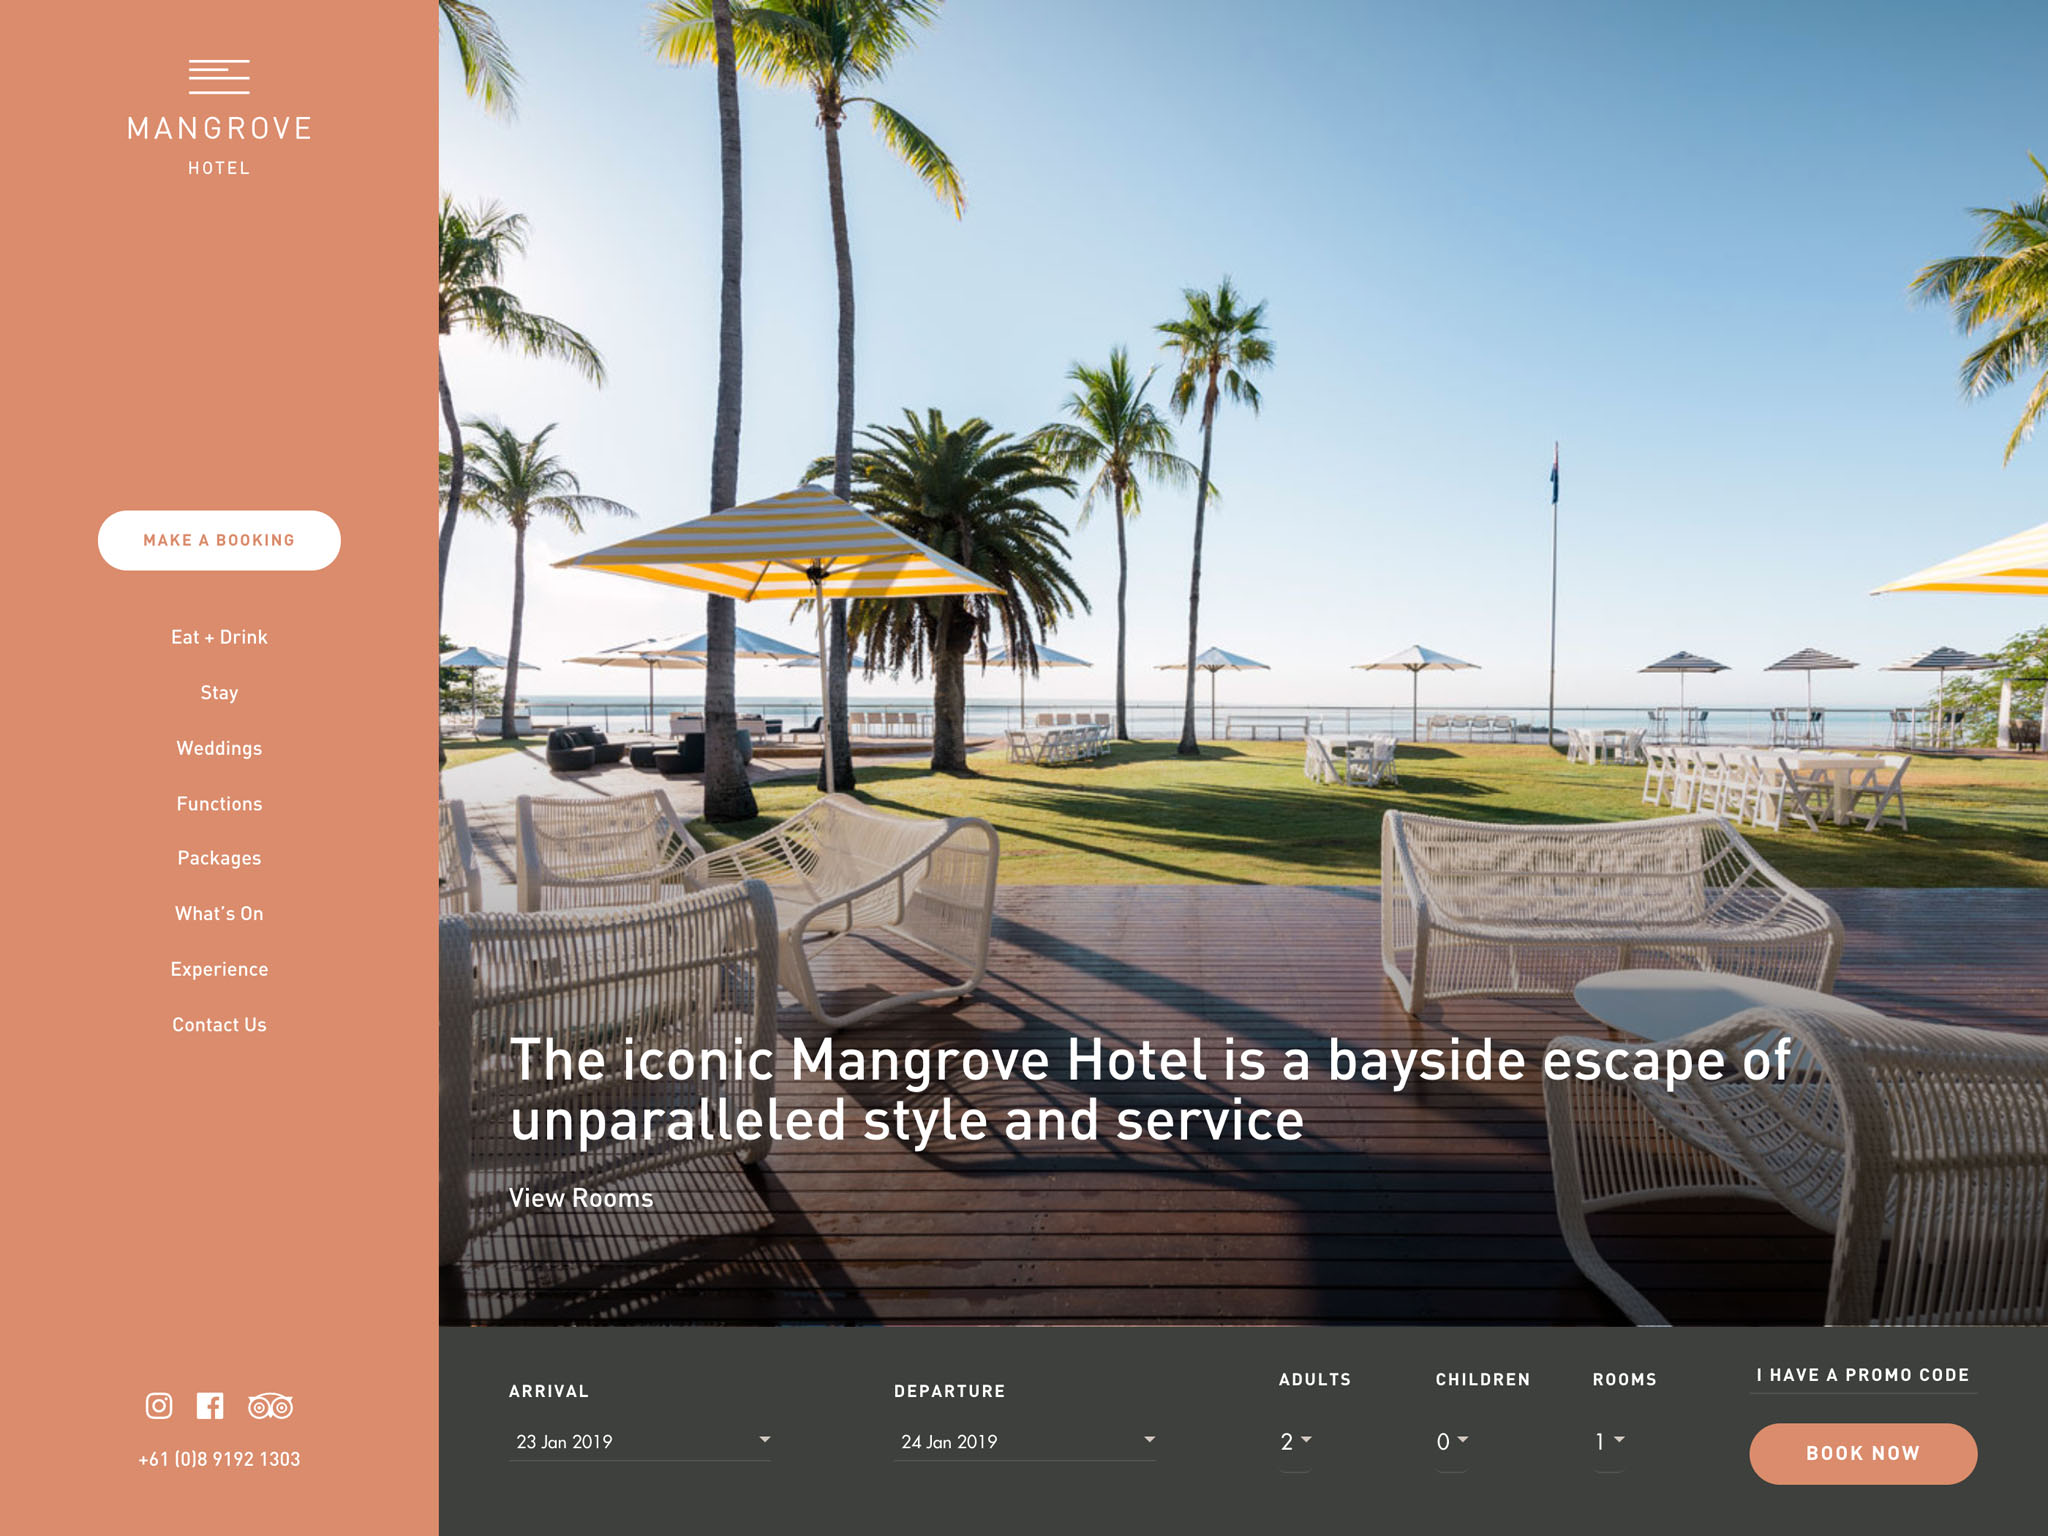 Mangrove Hotel – this iconic Hotel in Broome WA is a bayside escape of unparalleled style and service